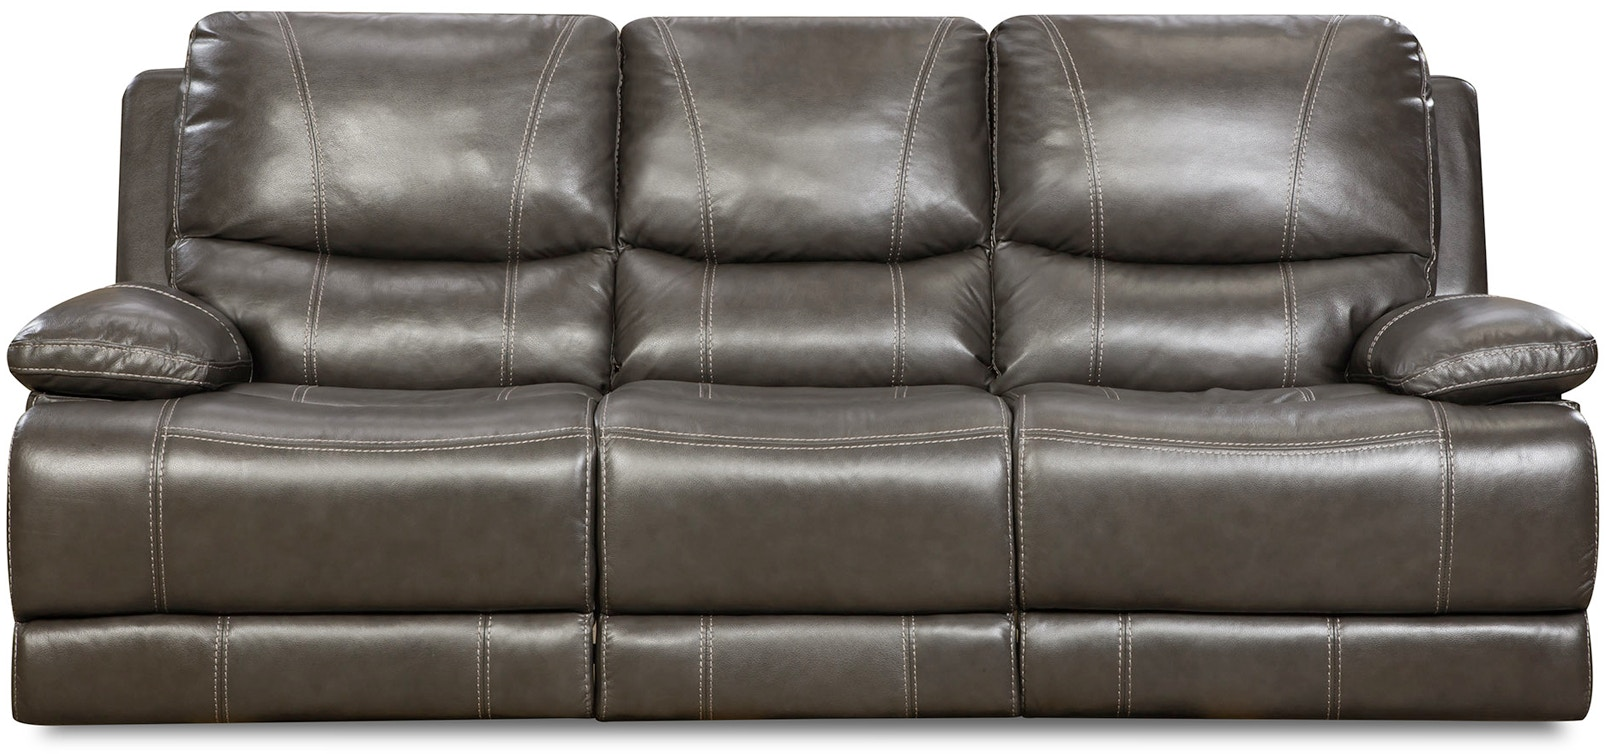 Corinthian Sofa Reno Putty Sofa By Corinthian At Furniture